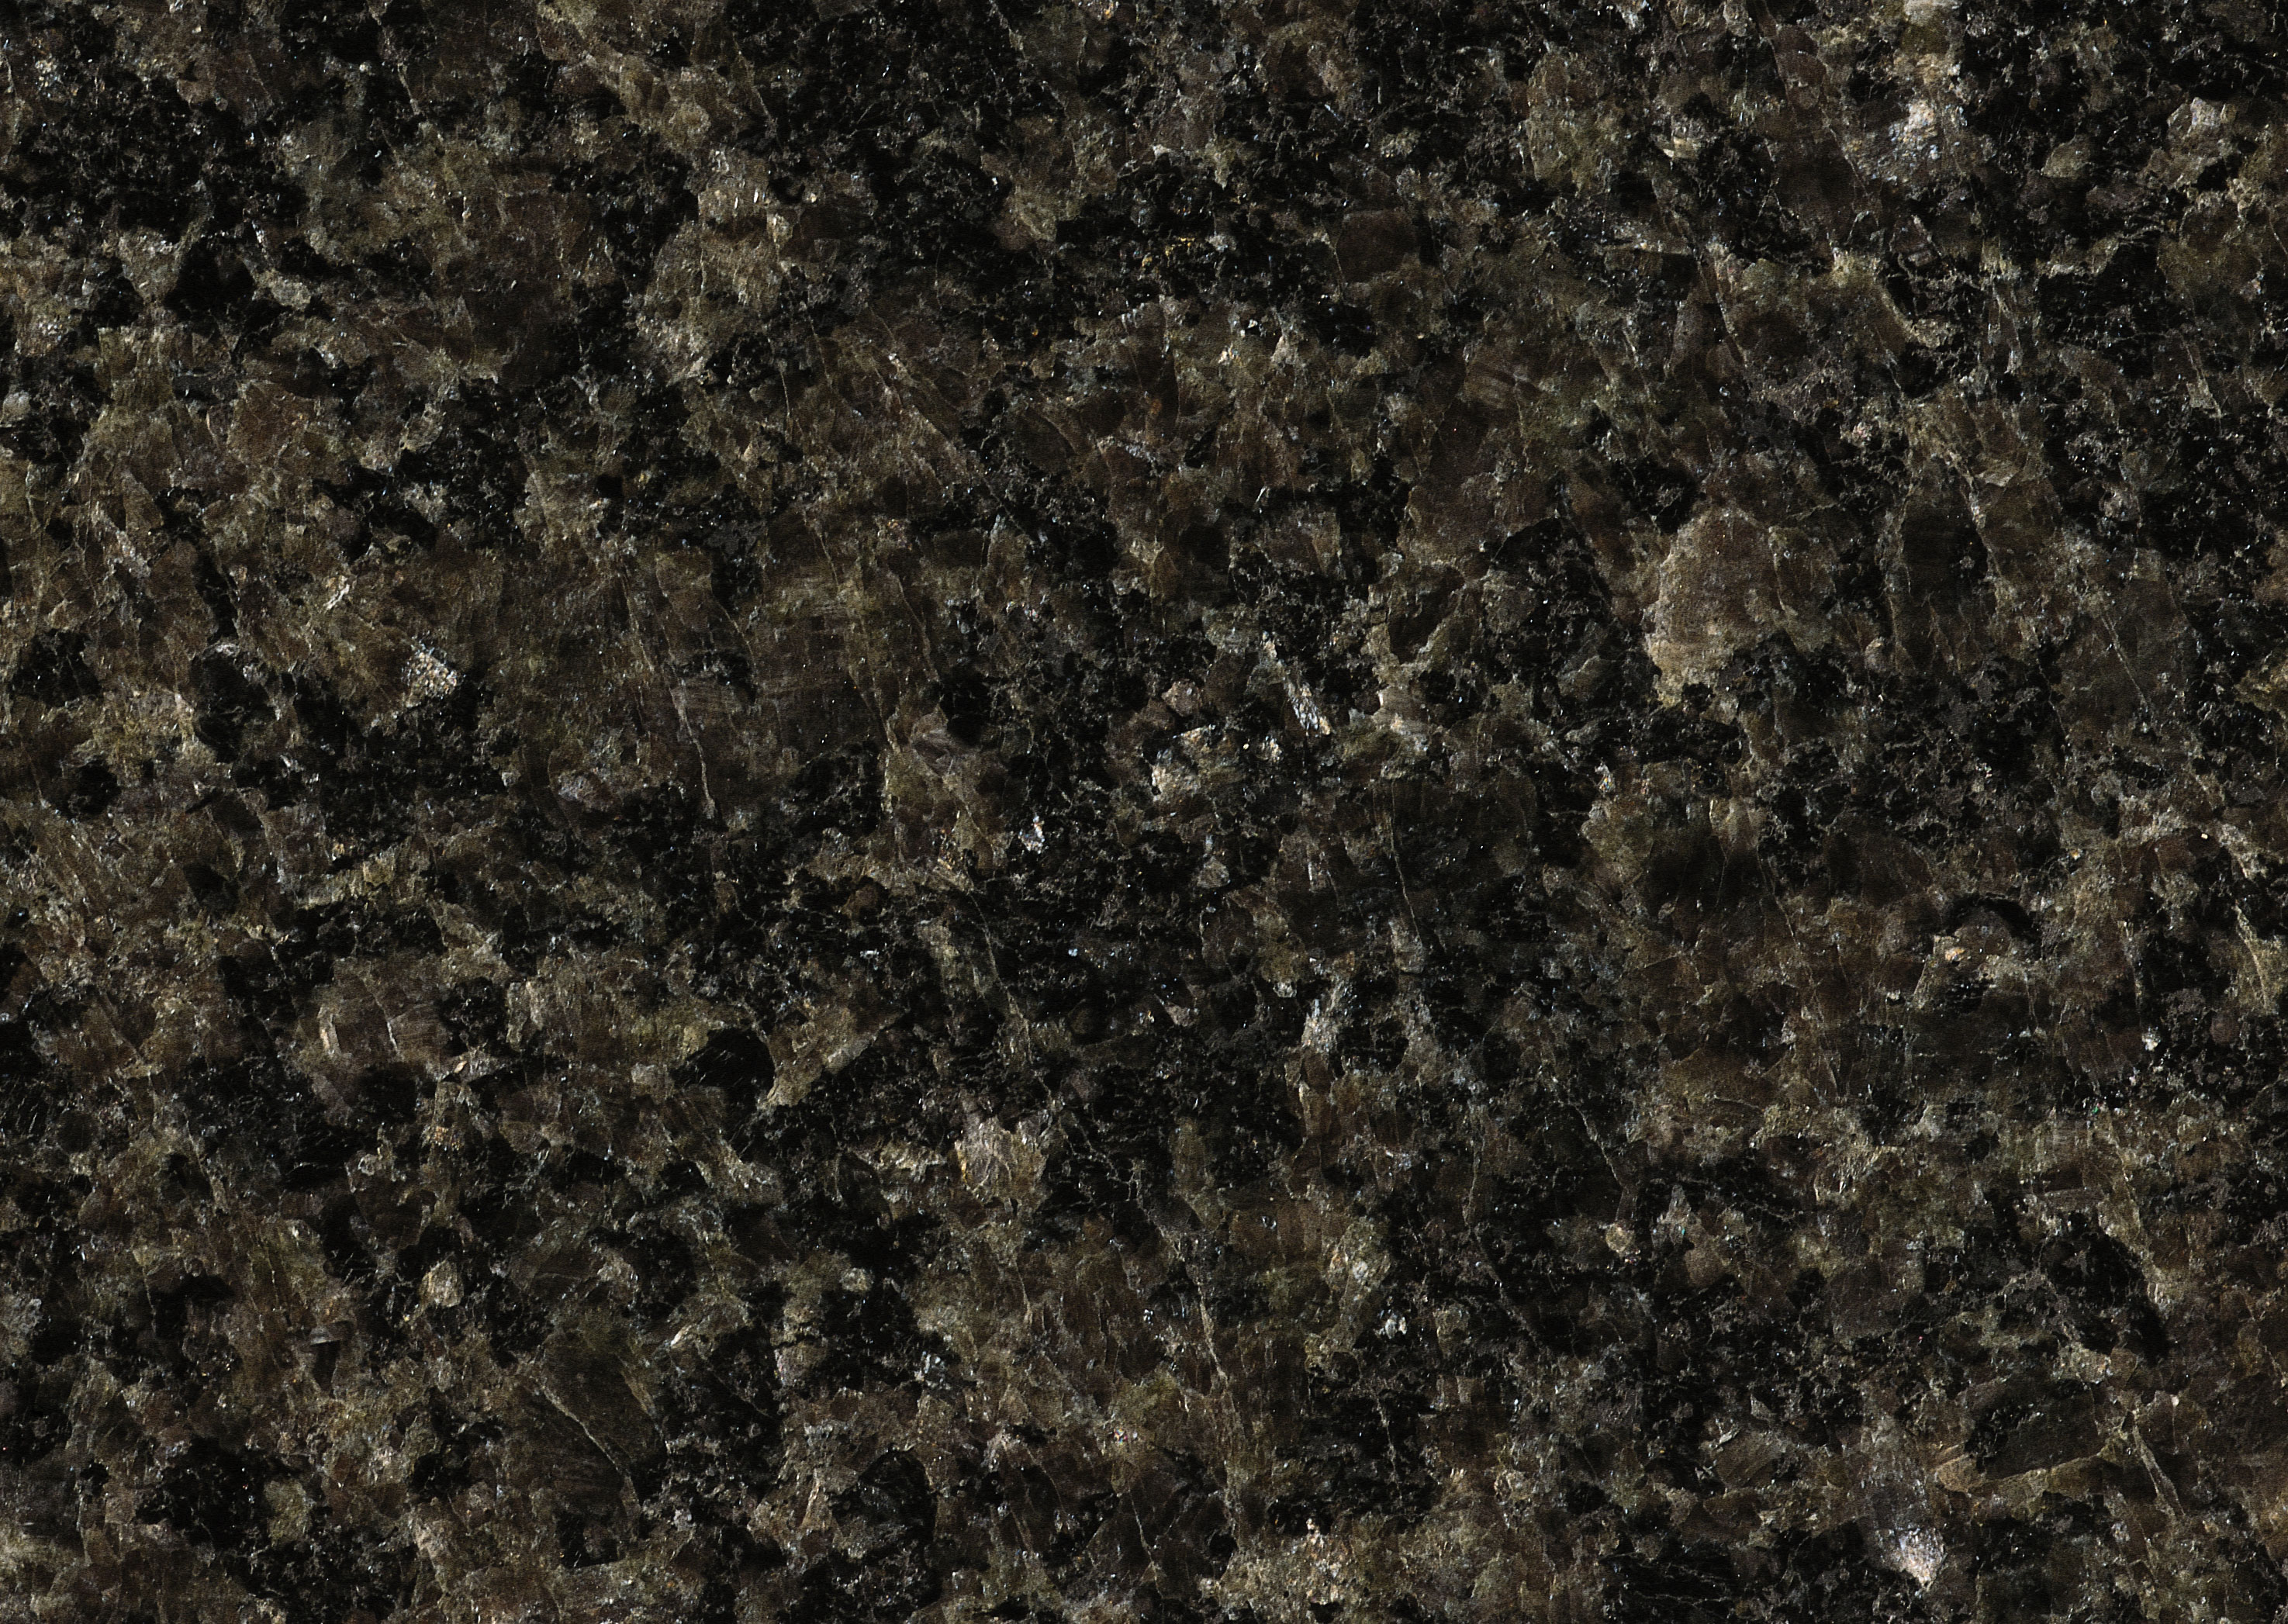 granite kitchen countertops with 4410 on Sensational Kitchen Splashbacks besides 18788523423169315 besides Cheng Design Concrete High Rise San Francisco as well A Splash Of Color 13 Colorful Kitchen Design Ideas together with .